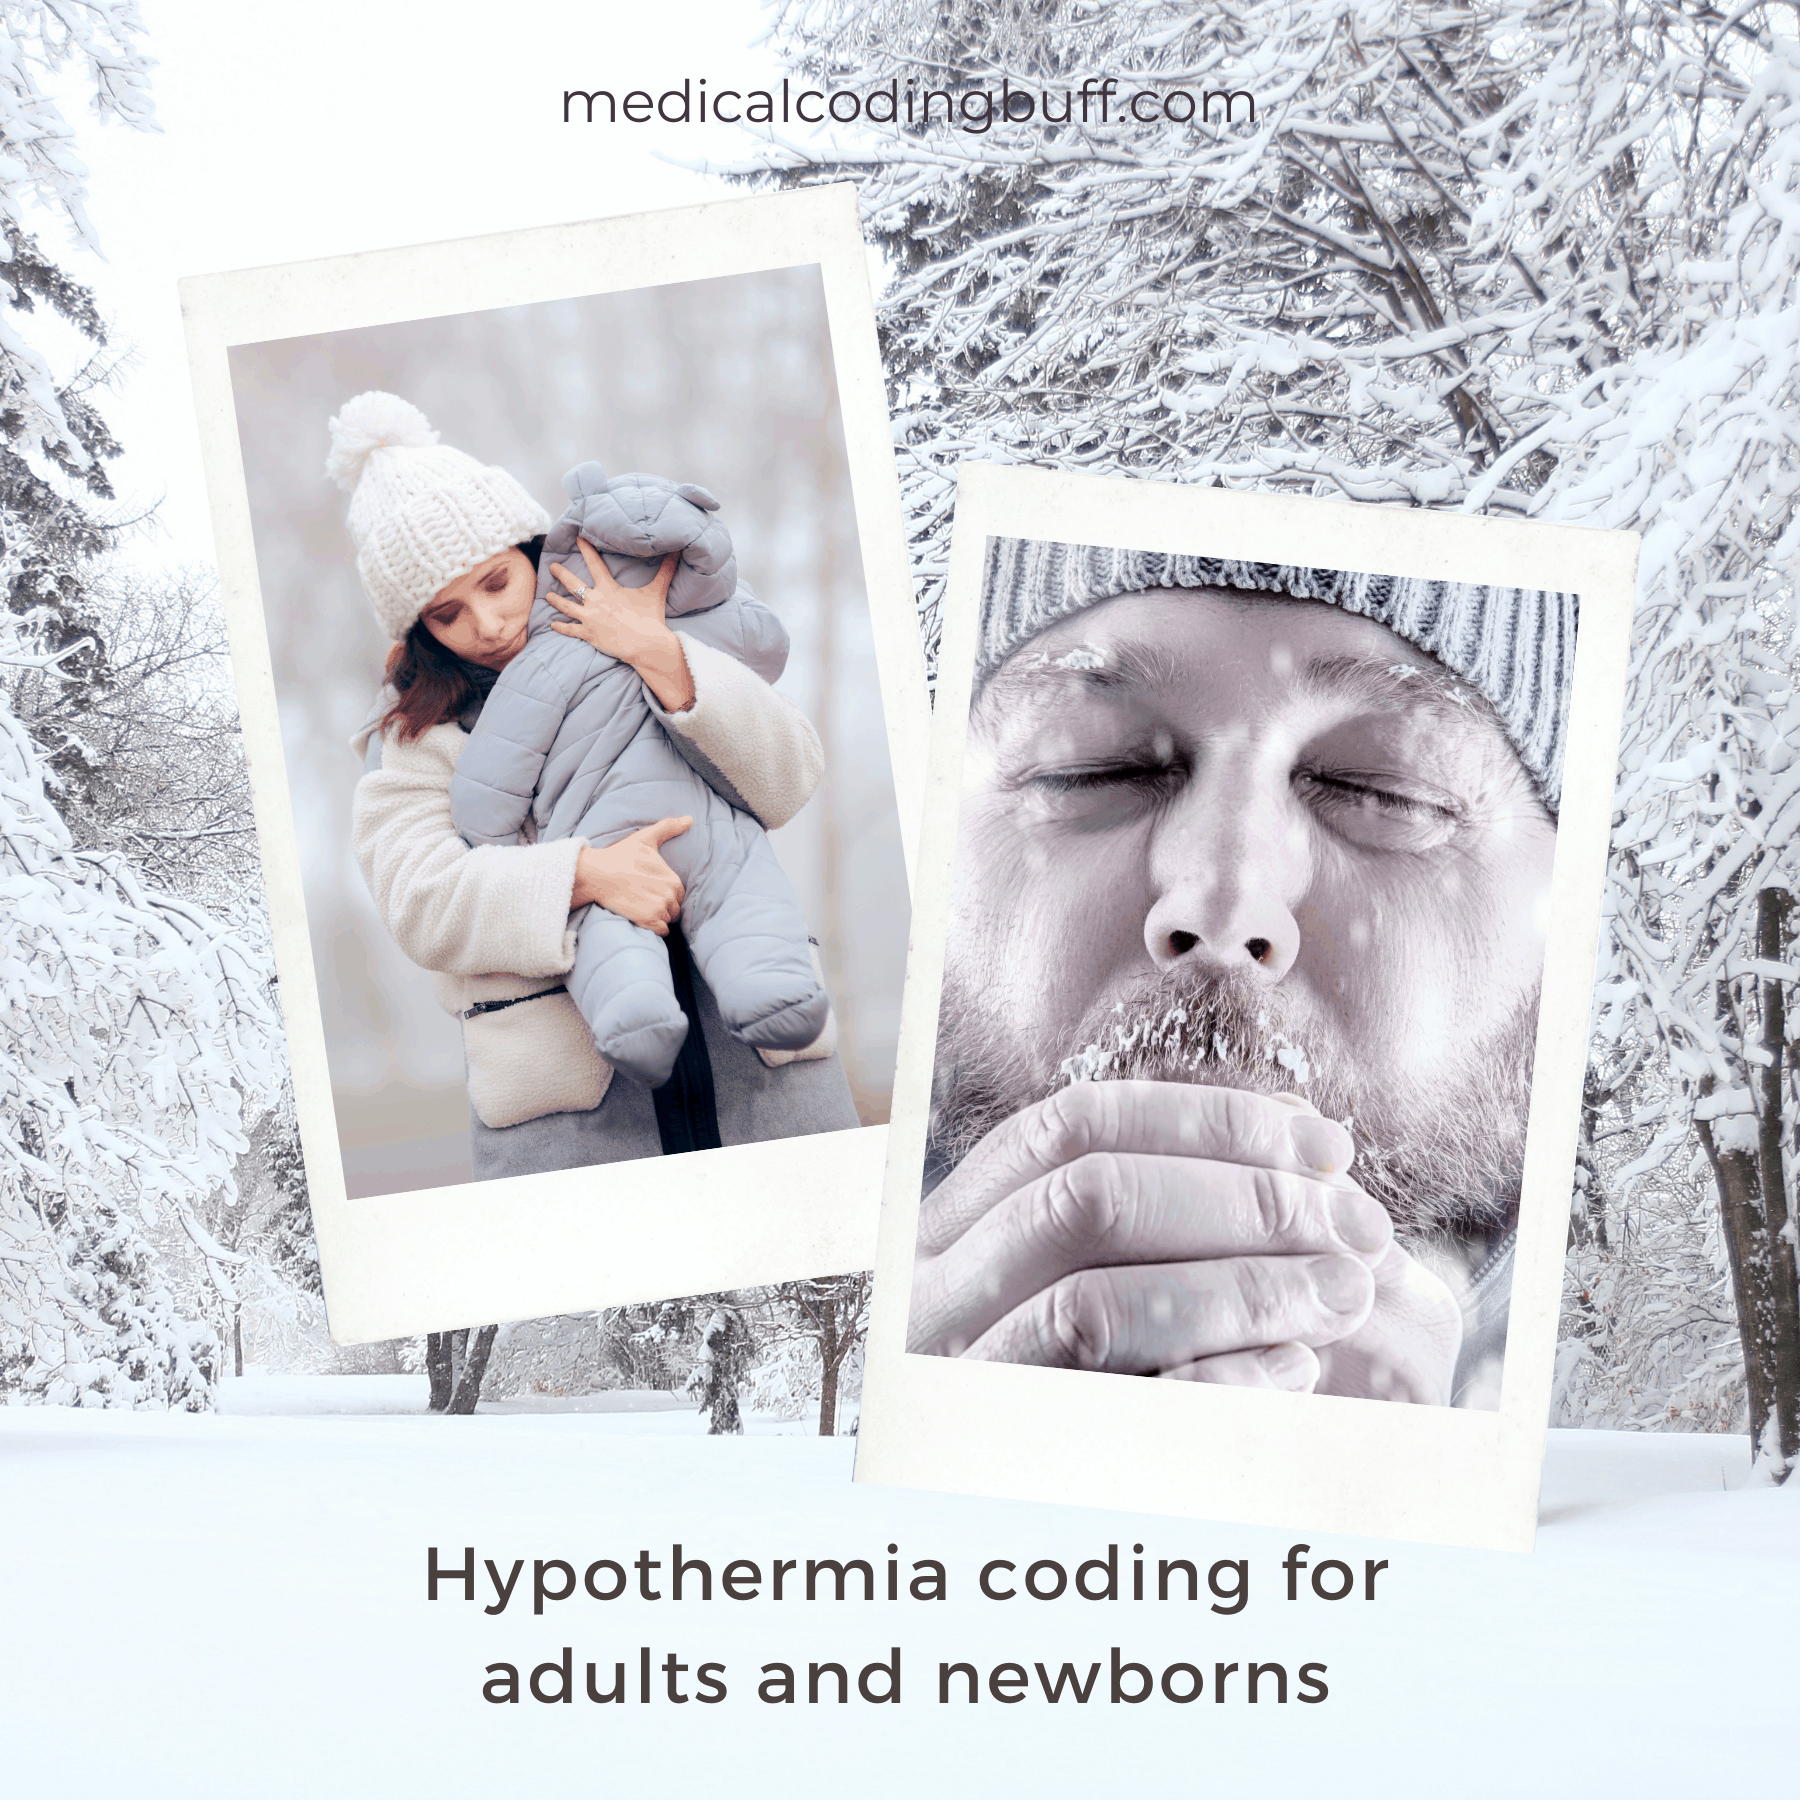 hypothermia coding for adults and newborns in ICD-10-CM